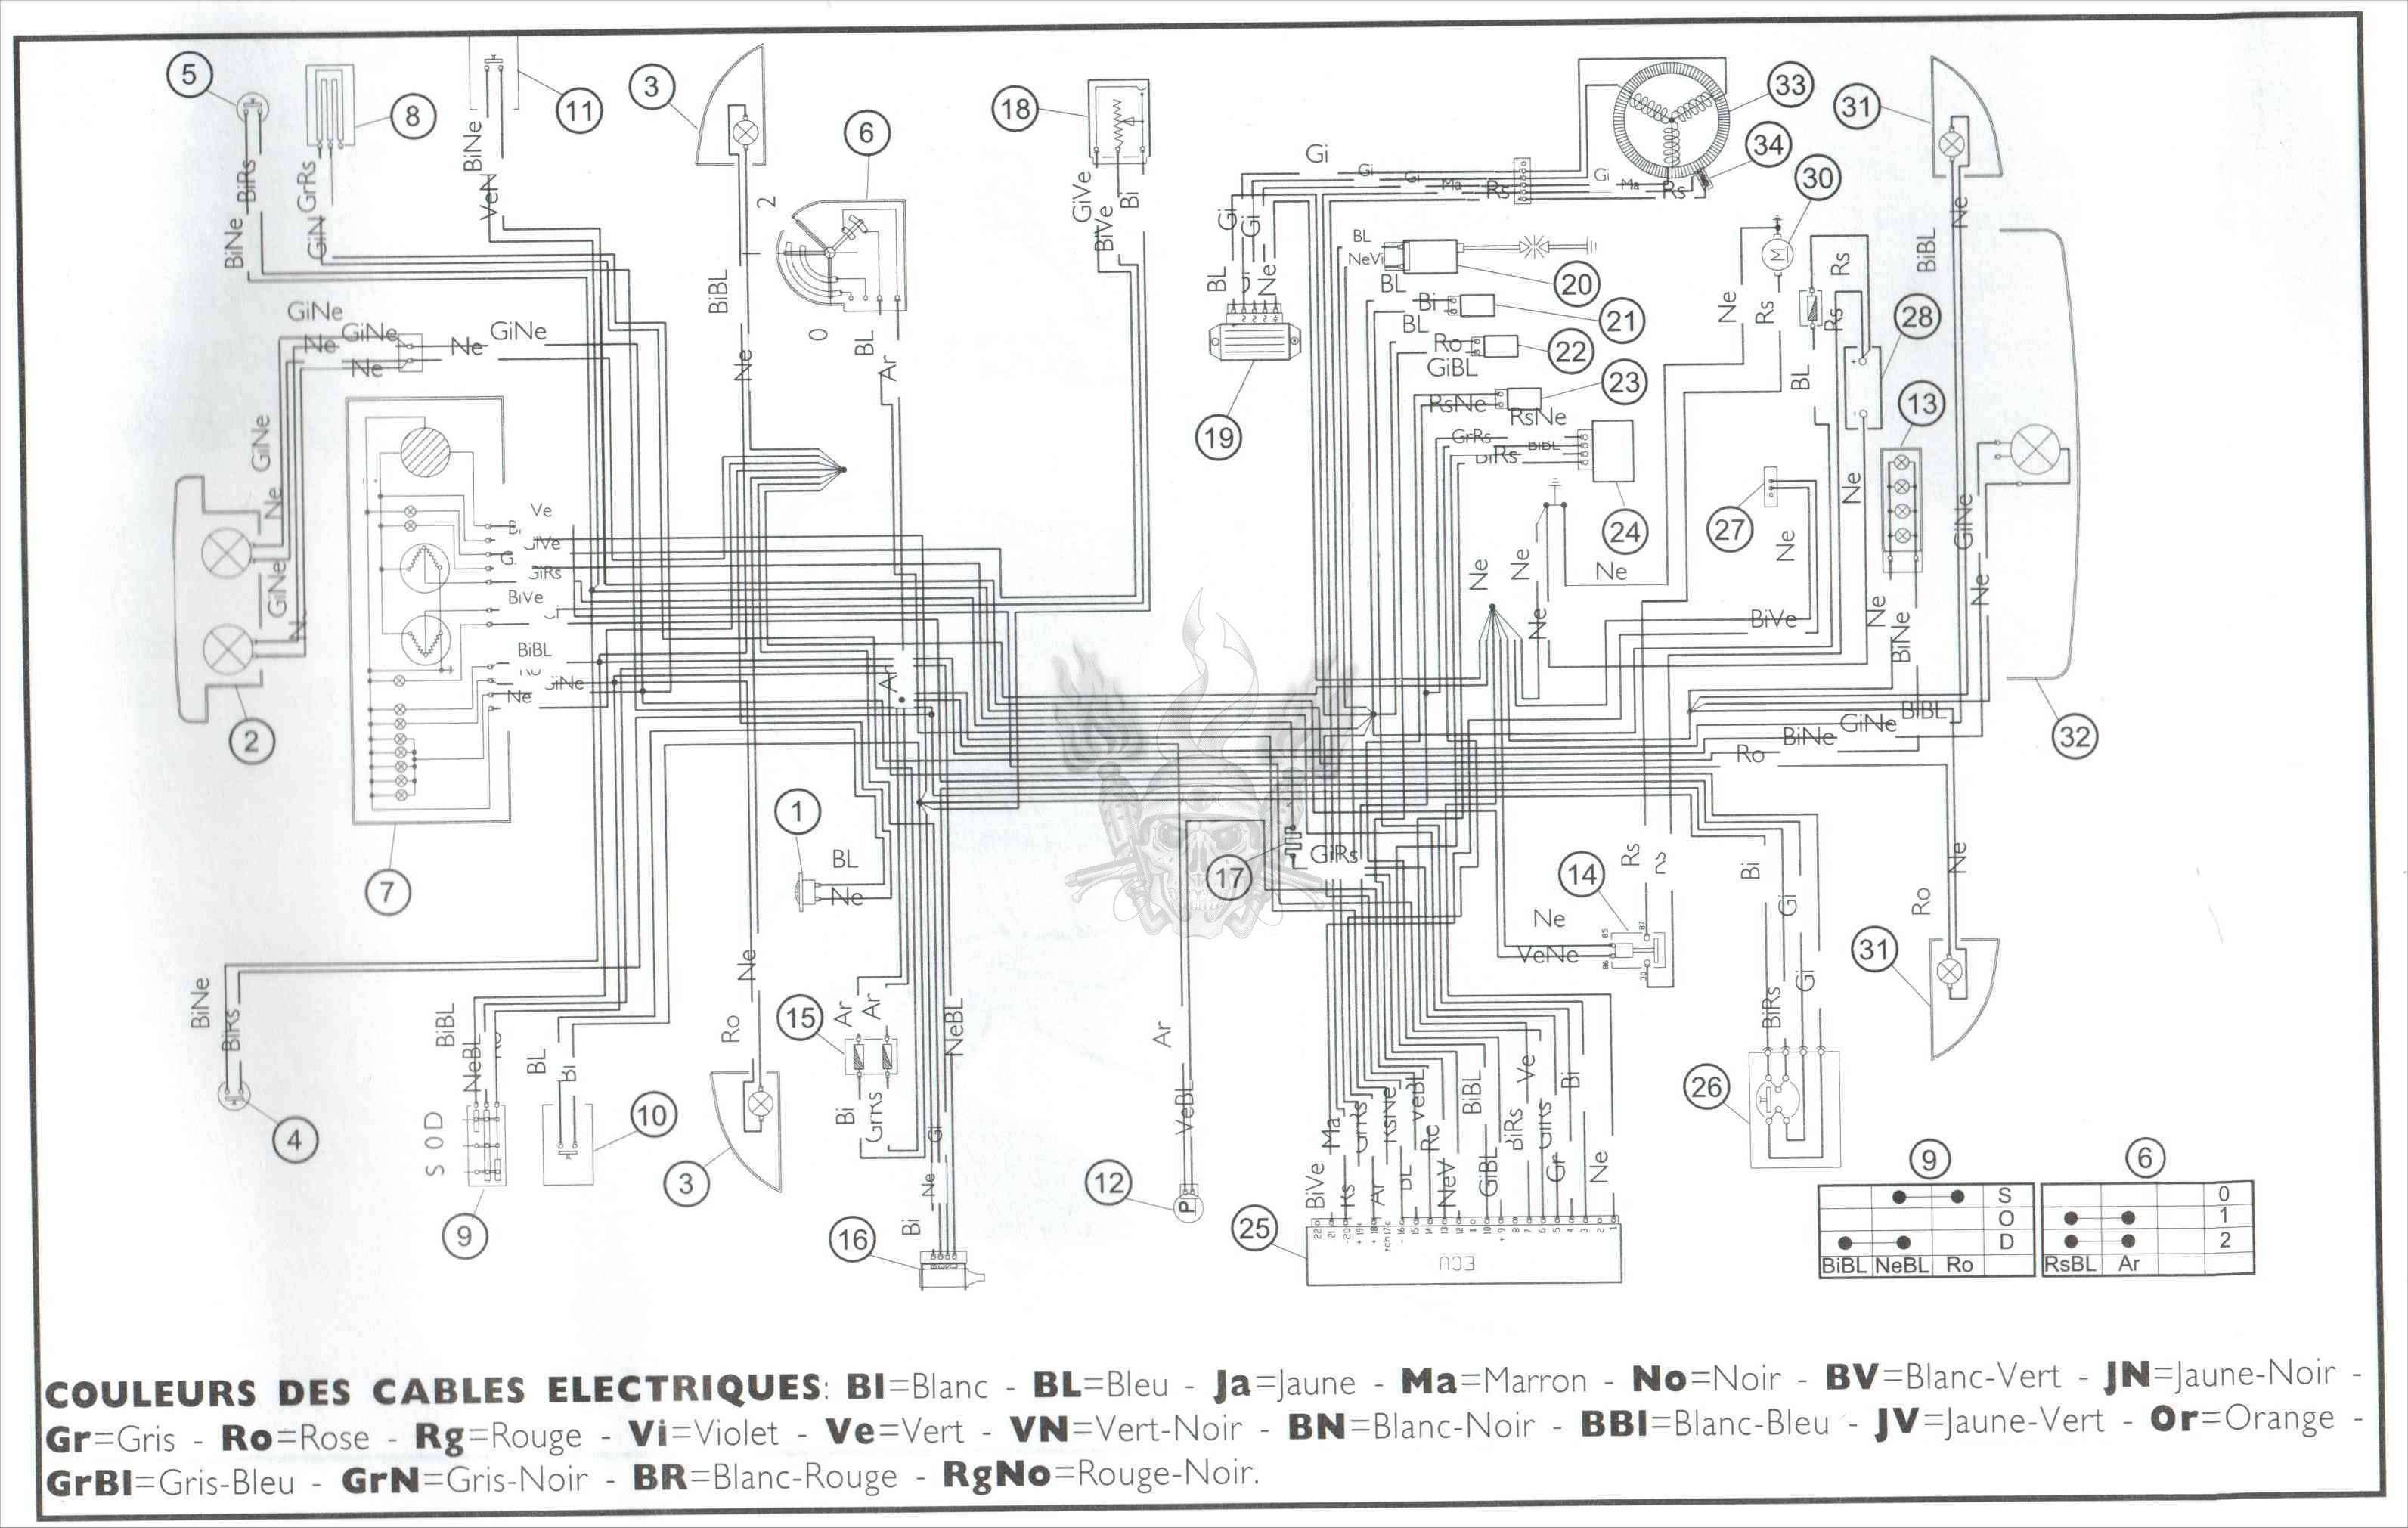 Qingqi Scooter Wiring Diagram Yamaha Big Bear 350 Schematic Libraryqm50qt Page 3 And Schematics 250cc